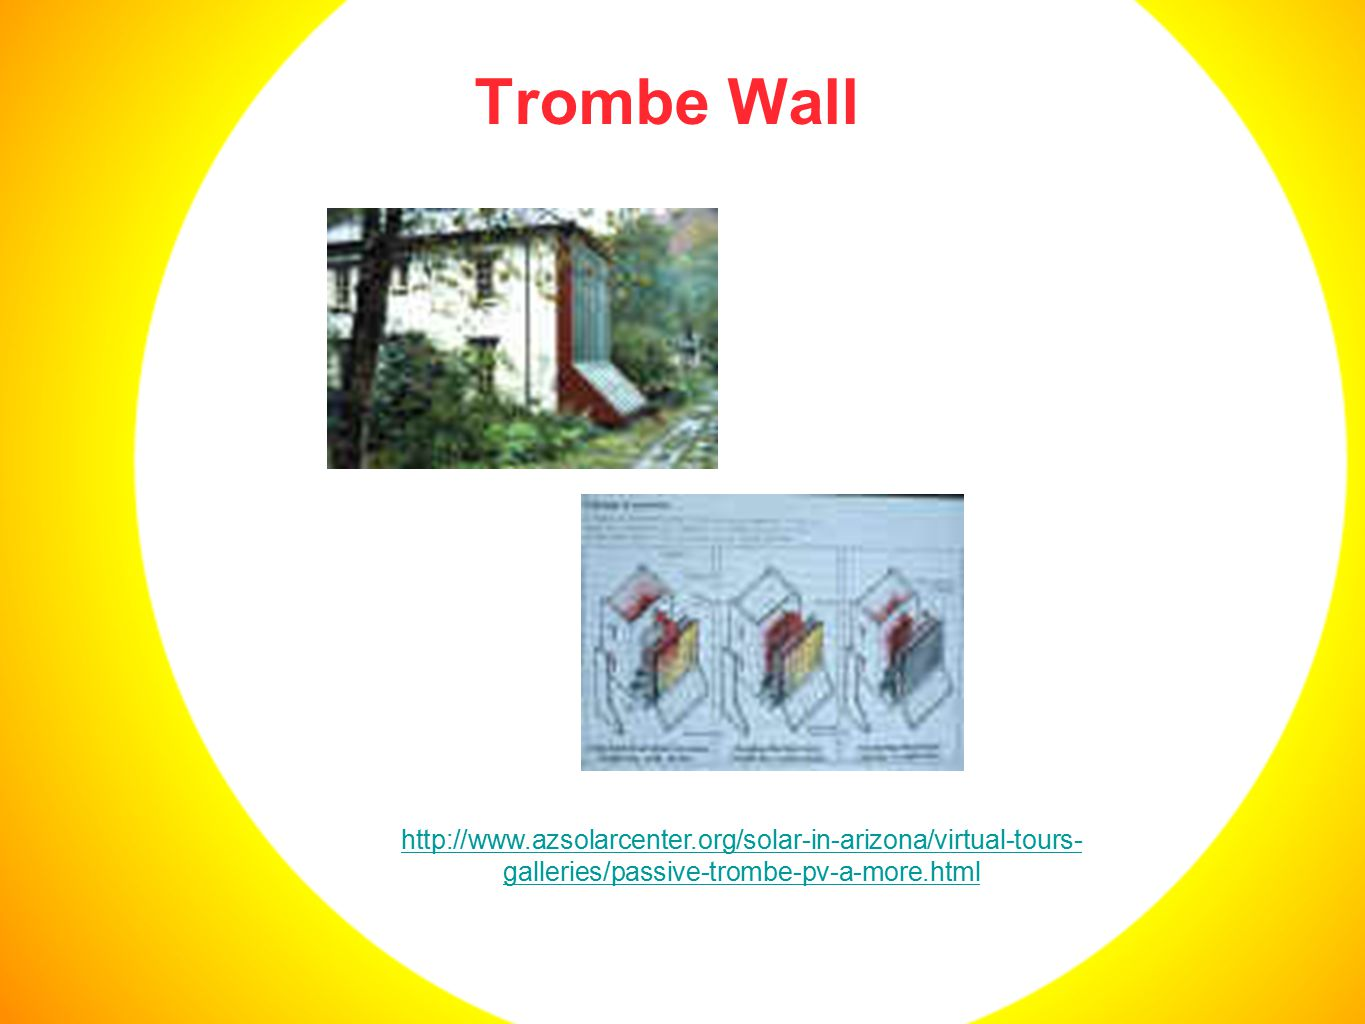 Trombe Wall   galleries/passive-trombe-pv-a-more.html